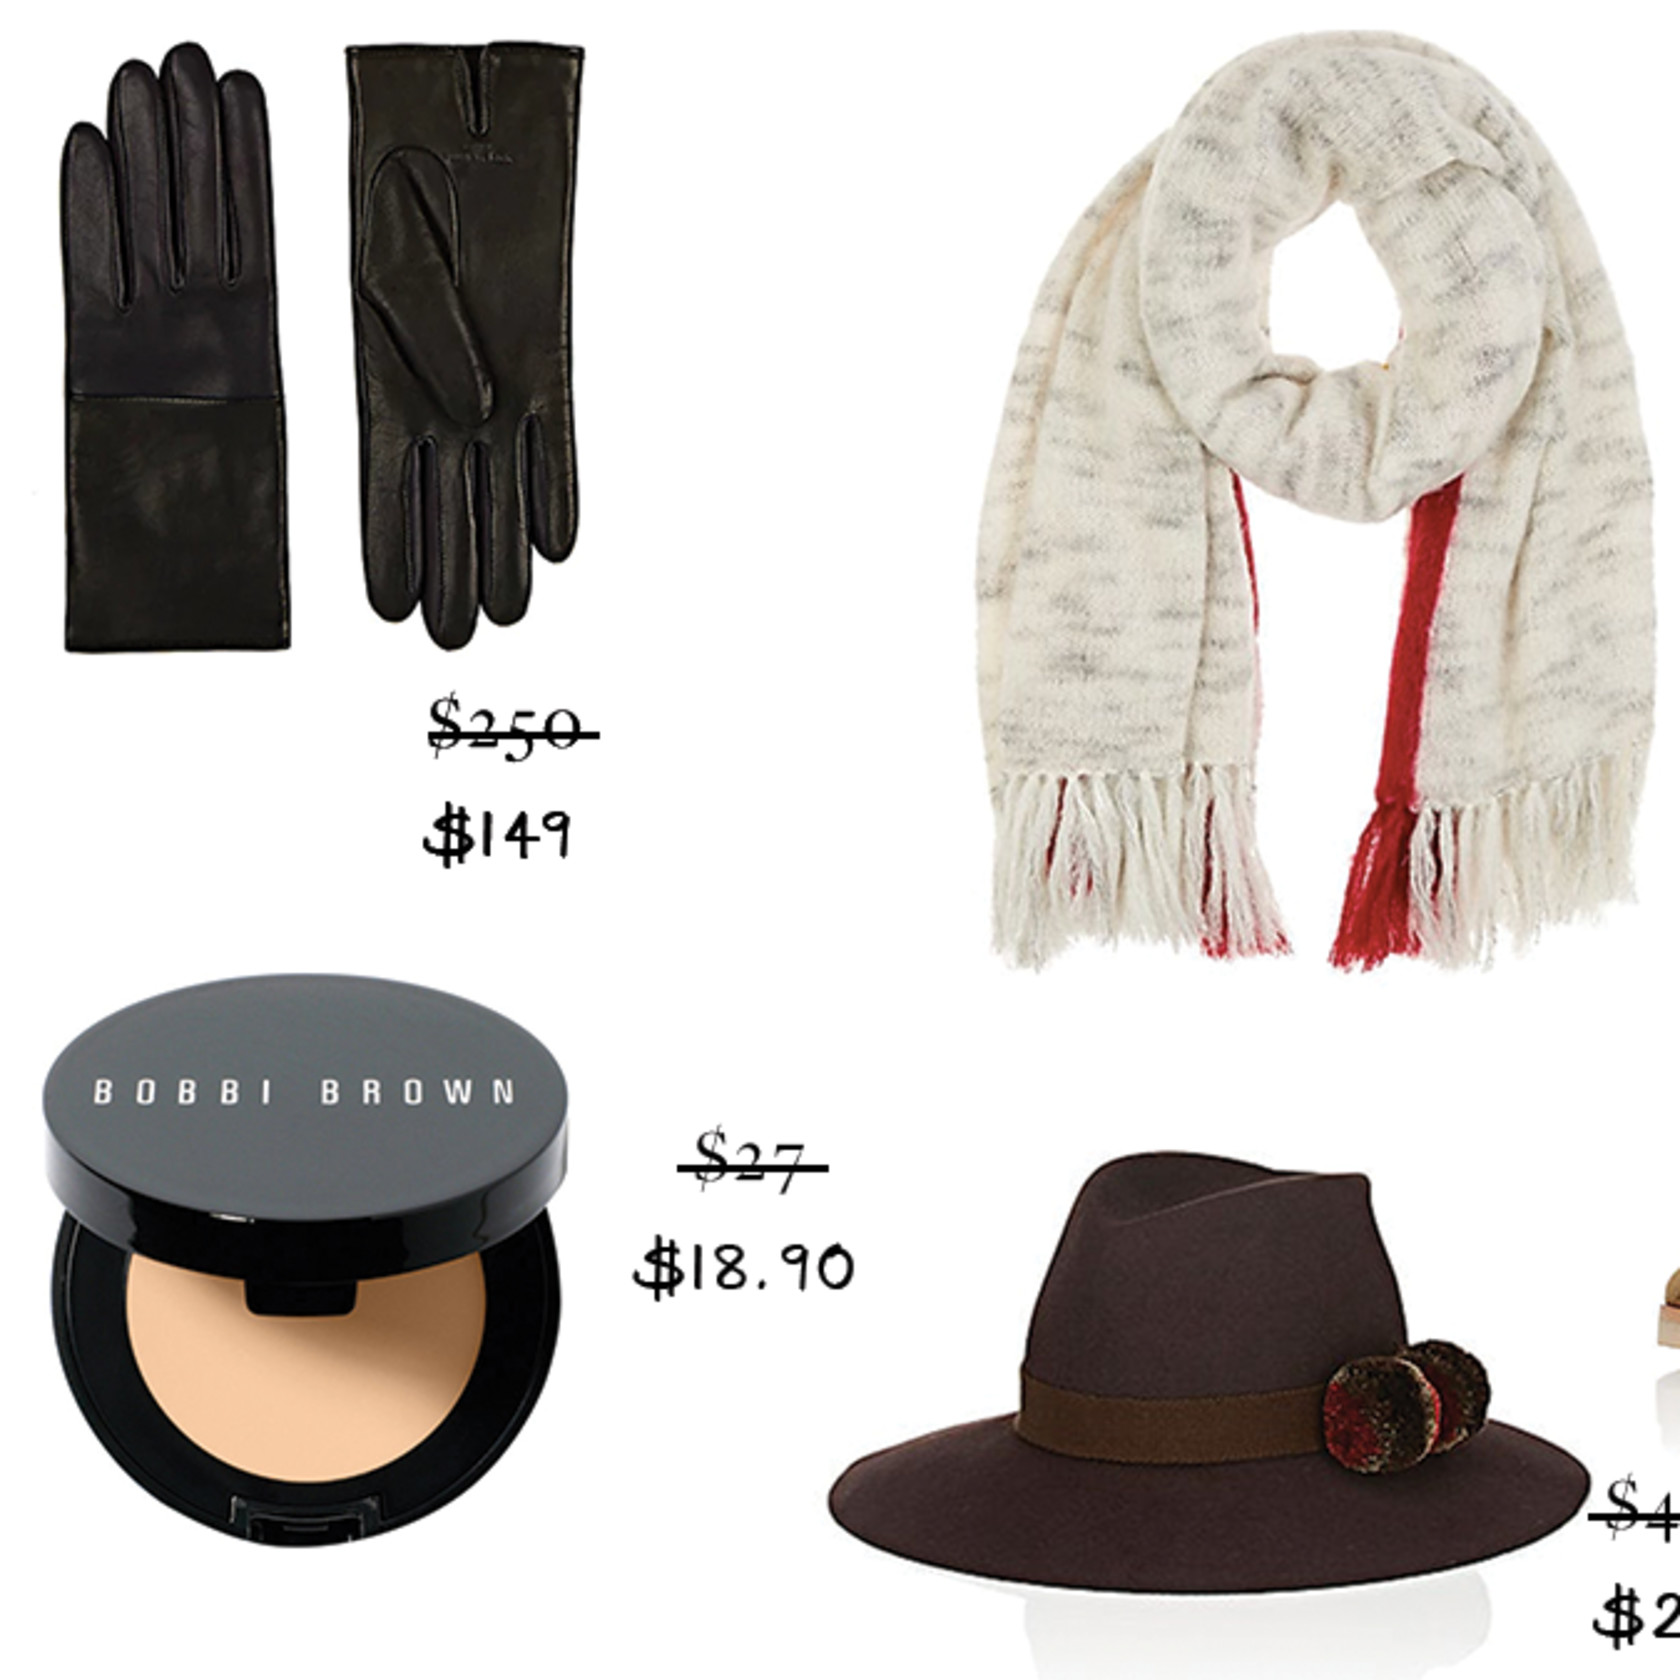 Barneys collage prices